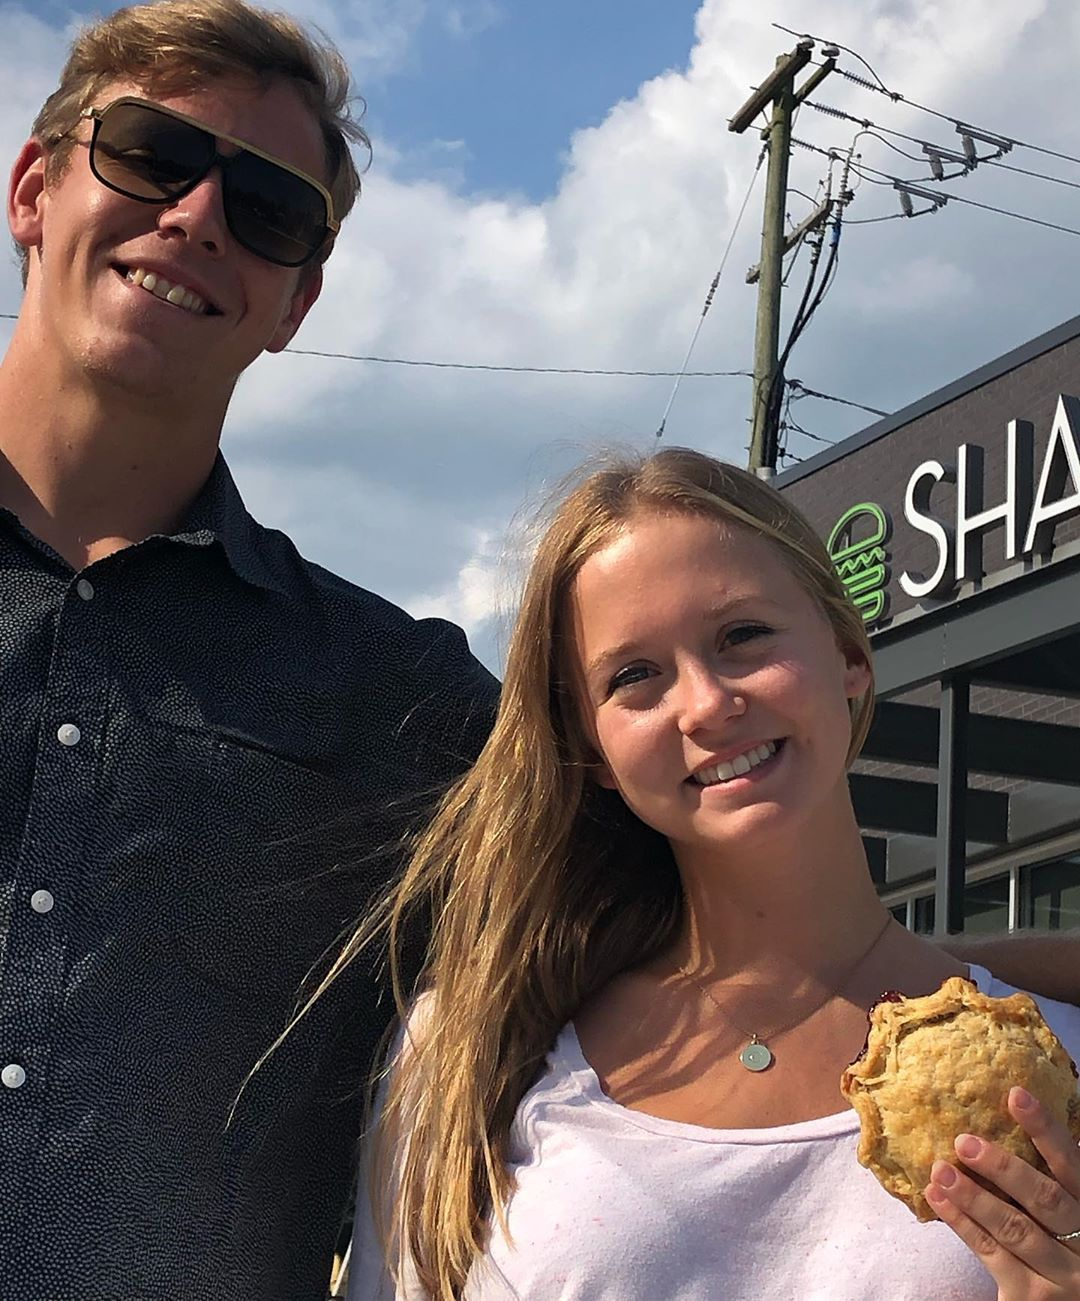 Hop over to   @shakeshack   Virginia Beach and grab your Pie Oh My.    #pie     #tarts     #eatpie     #shakeshack     #pieohmy     #desserts     #icecream     #burgers     #love     #red     #sweets     #august     #summer &